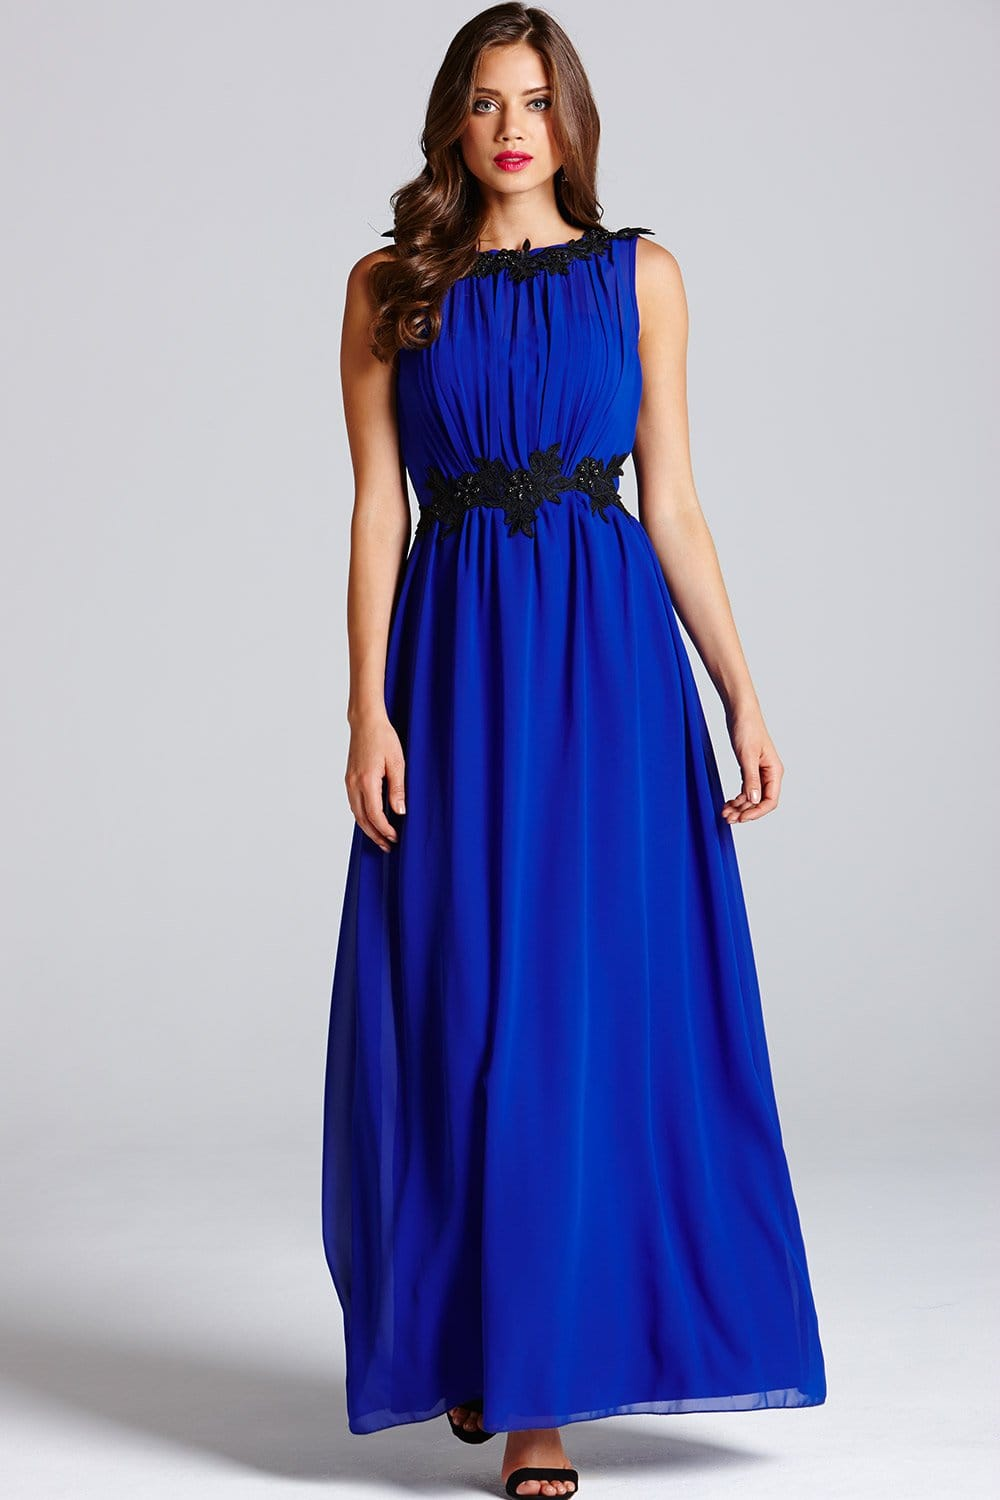 Shop chiffon maxi dress at Neiman Marcus, where you will find free shipping on the latest in fashion from top designers.